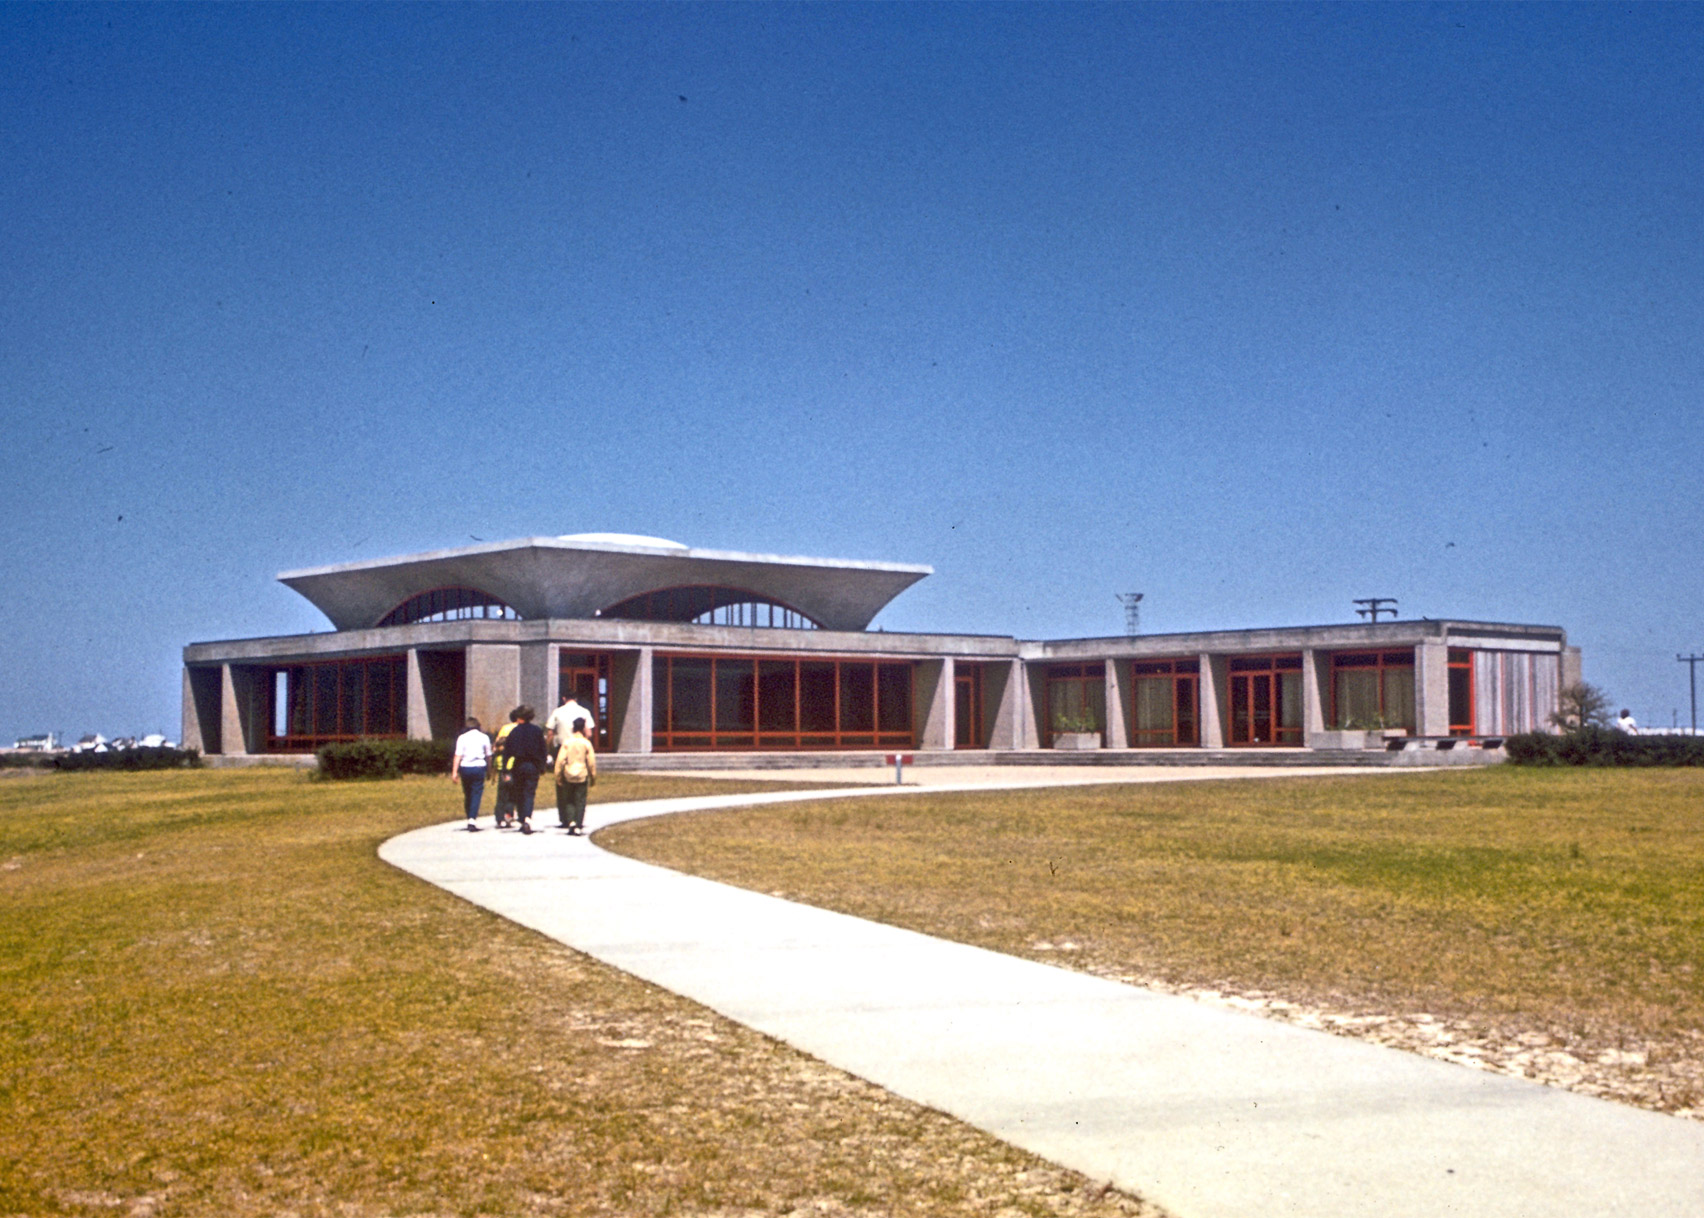 Wright Brothers National Memorial Visitor Center by Rogers & Poor, 1966